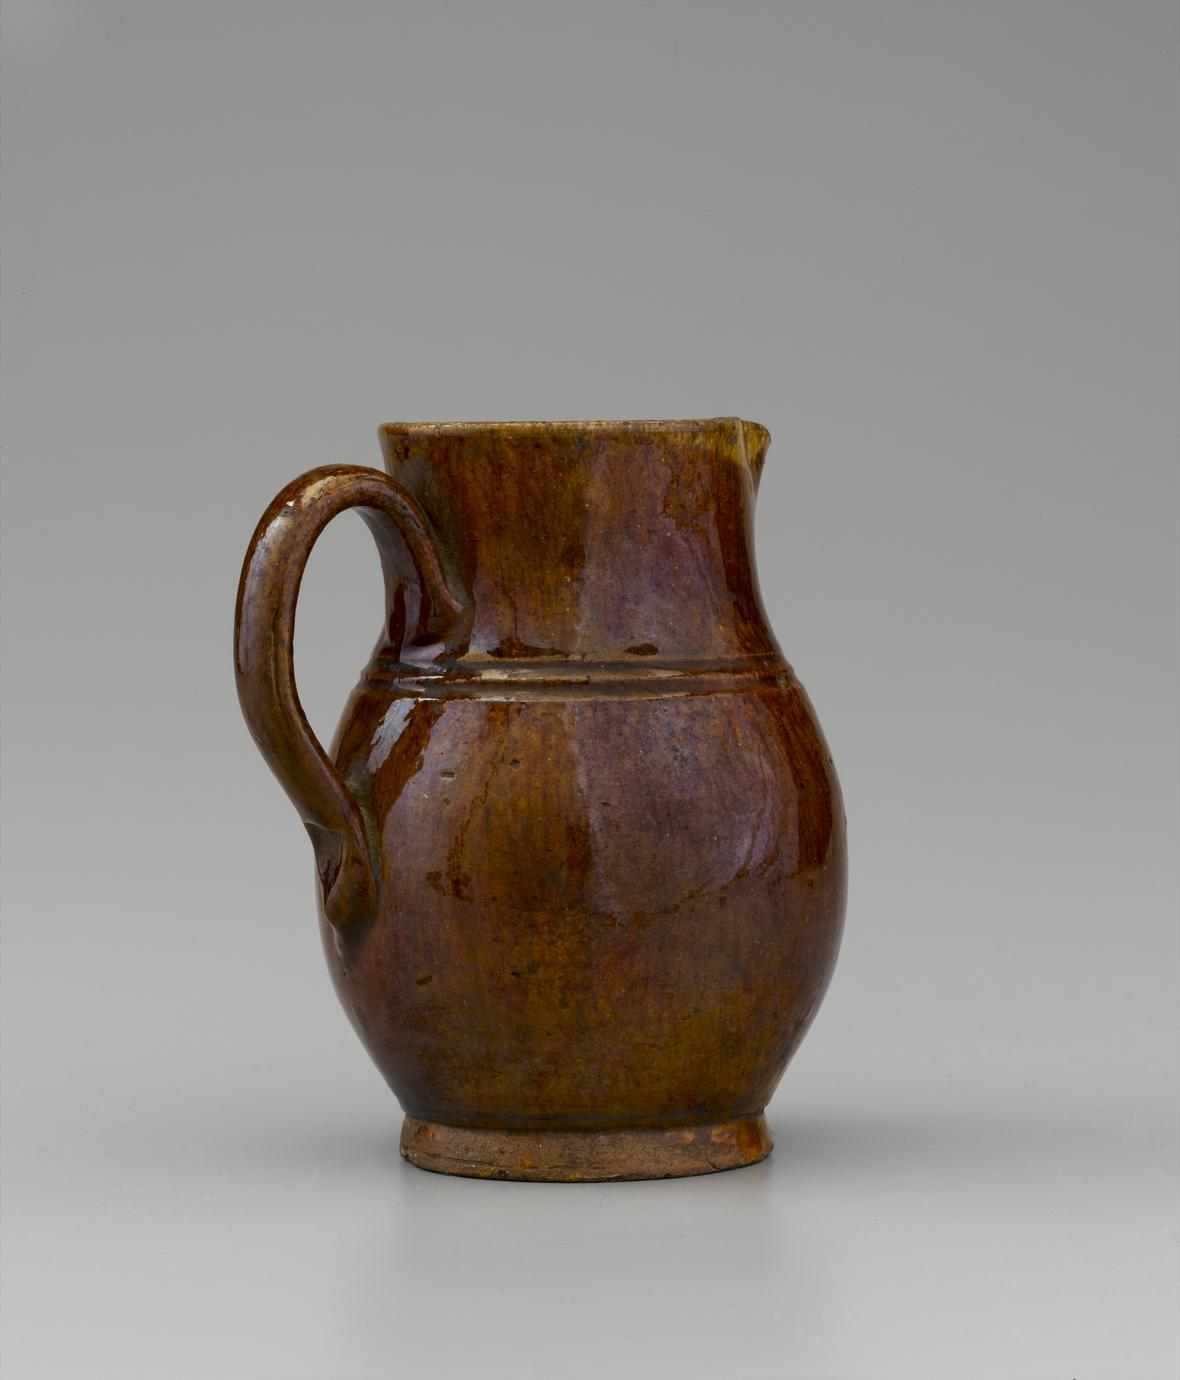 Pitcher (1 of 2)